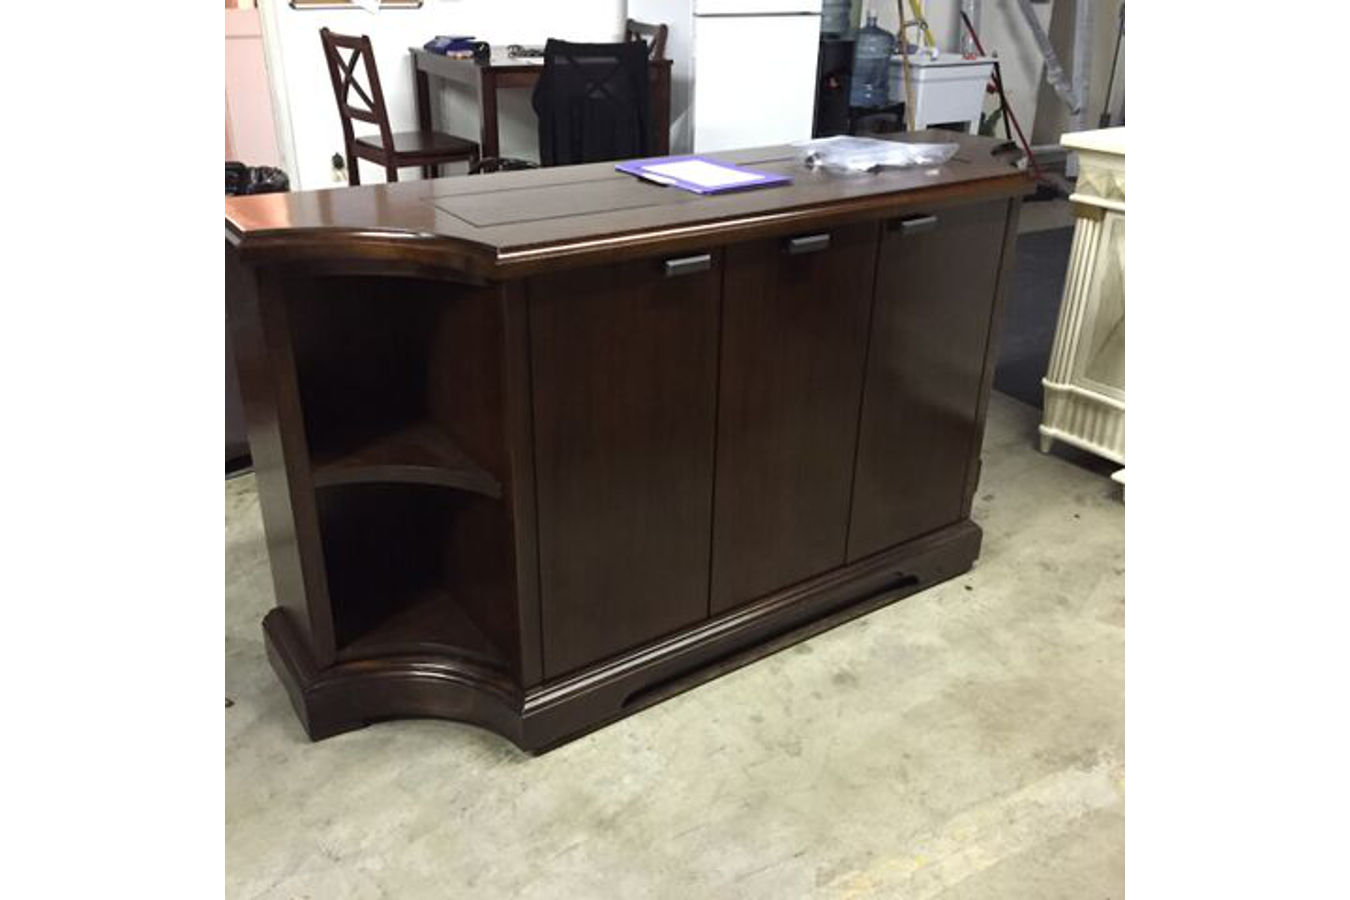 Flat screen tv riser carlton credenza tv lift cabinets for Tv lift consoles for flat screens